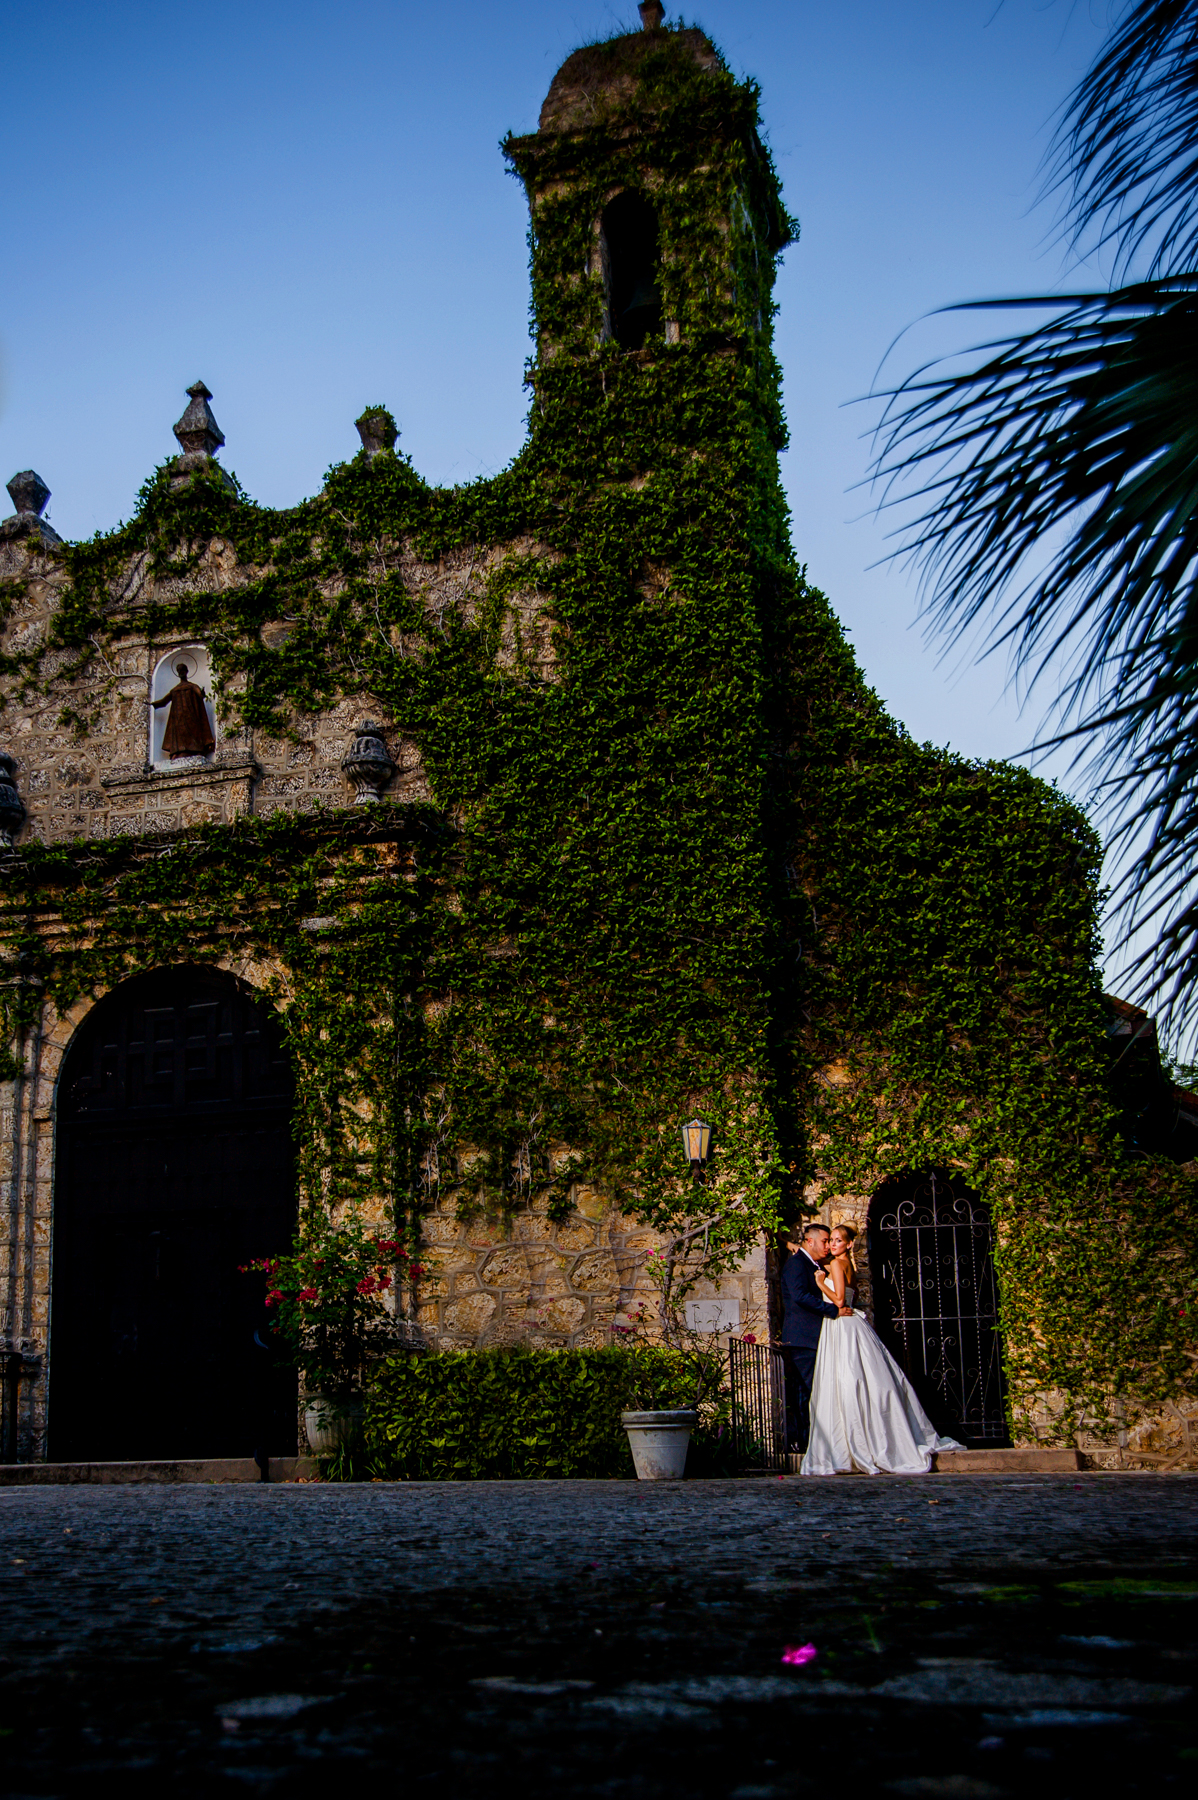 Christopher_Paul_Artistic_ Wedding_Photography-2.jpg